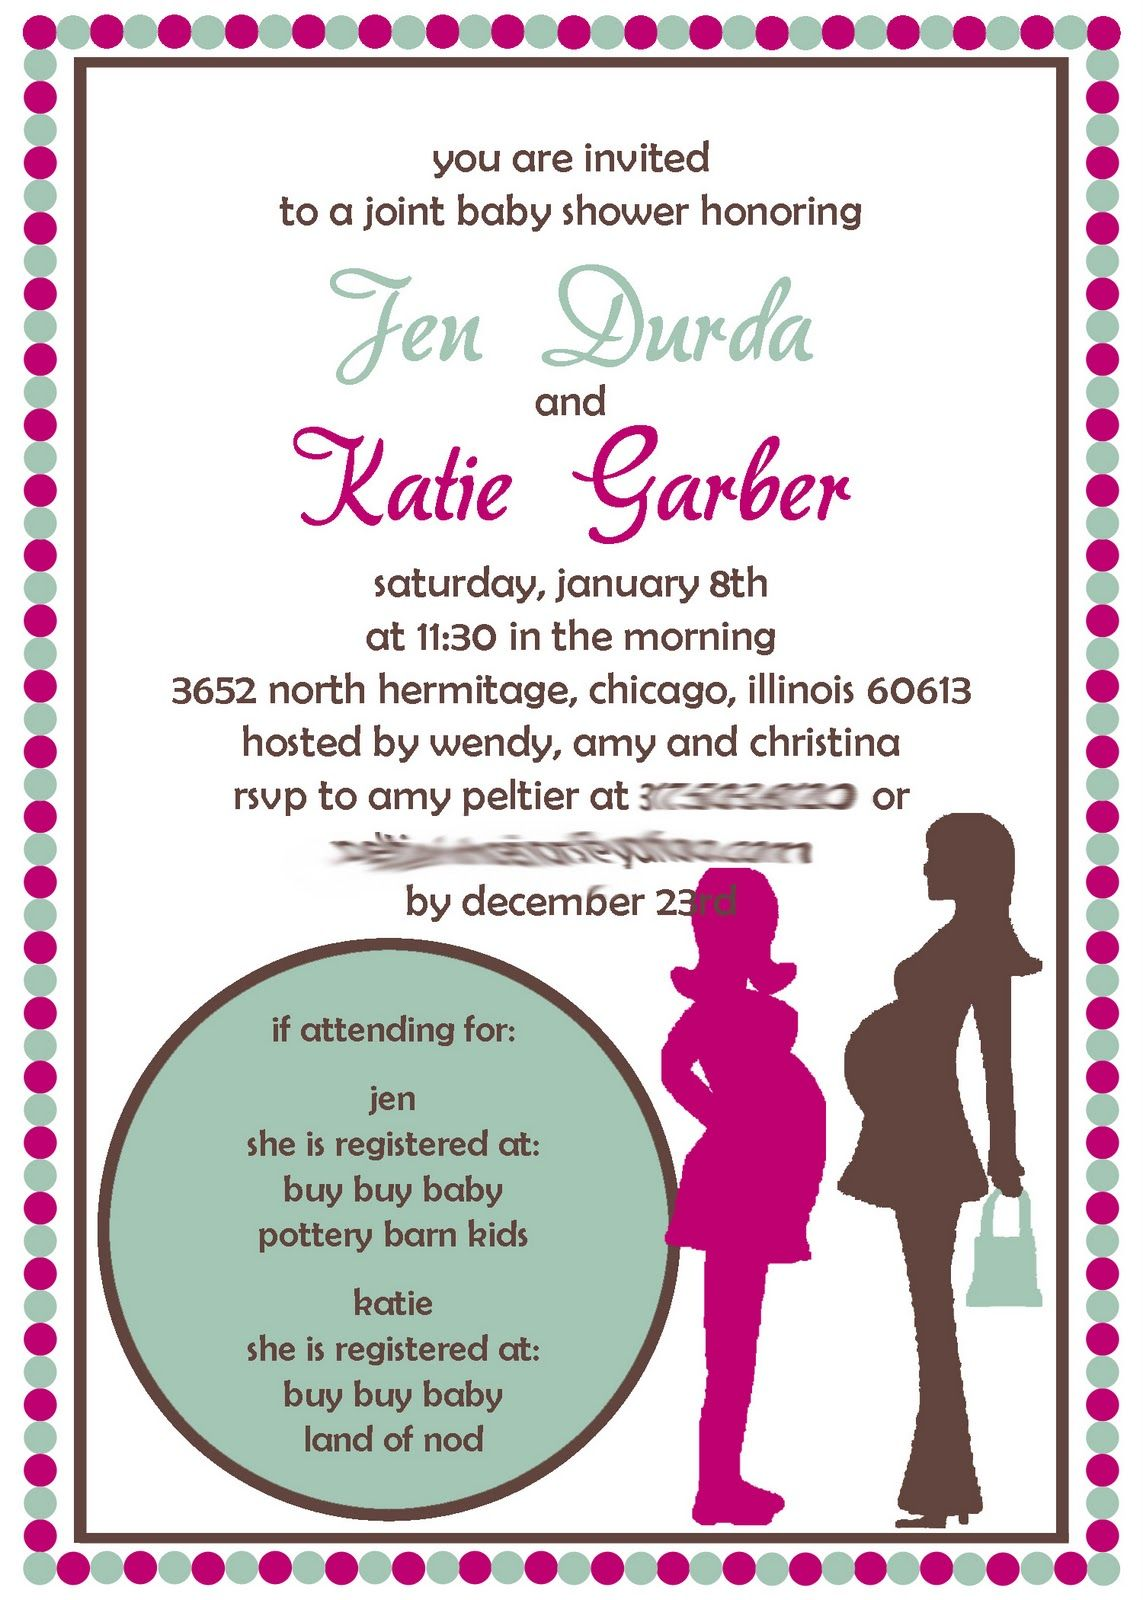 Joint baby shower invitation Google Image Result for http://3.bp ...